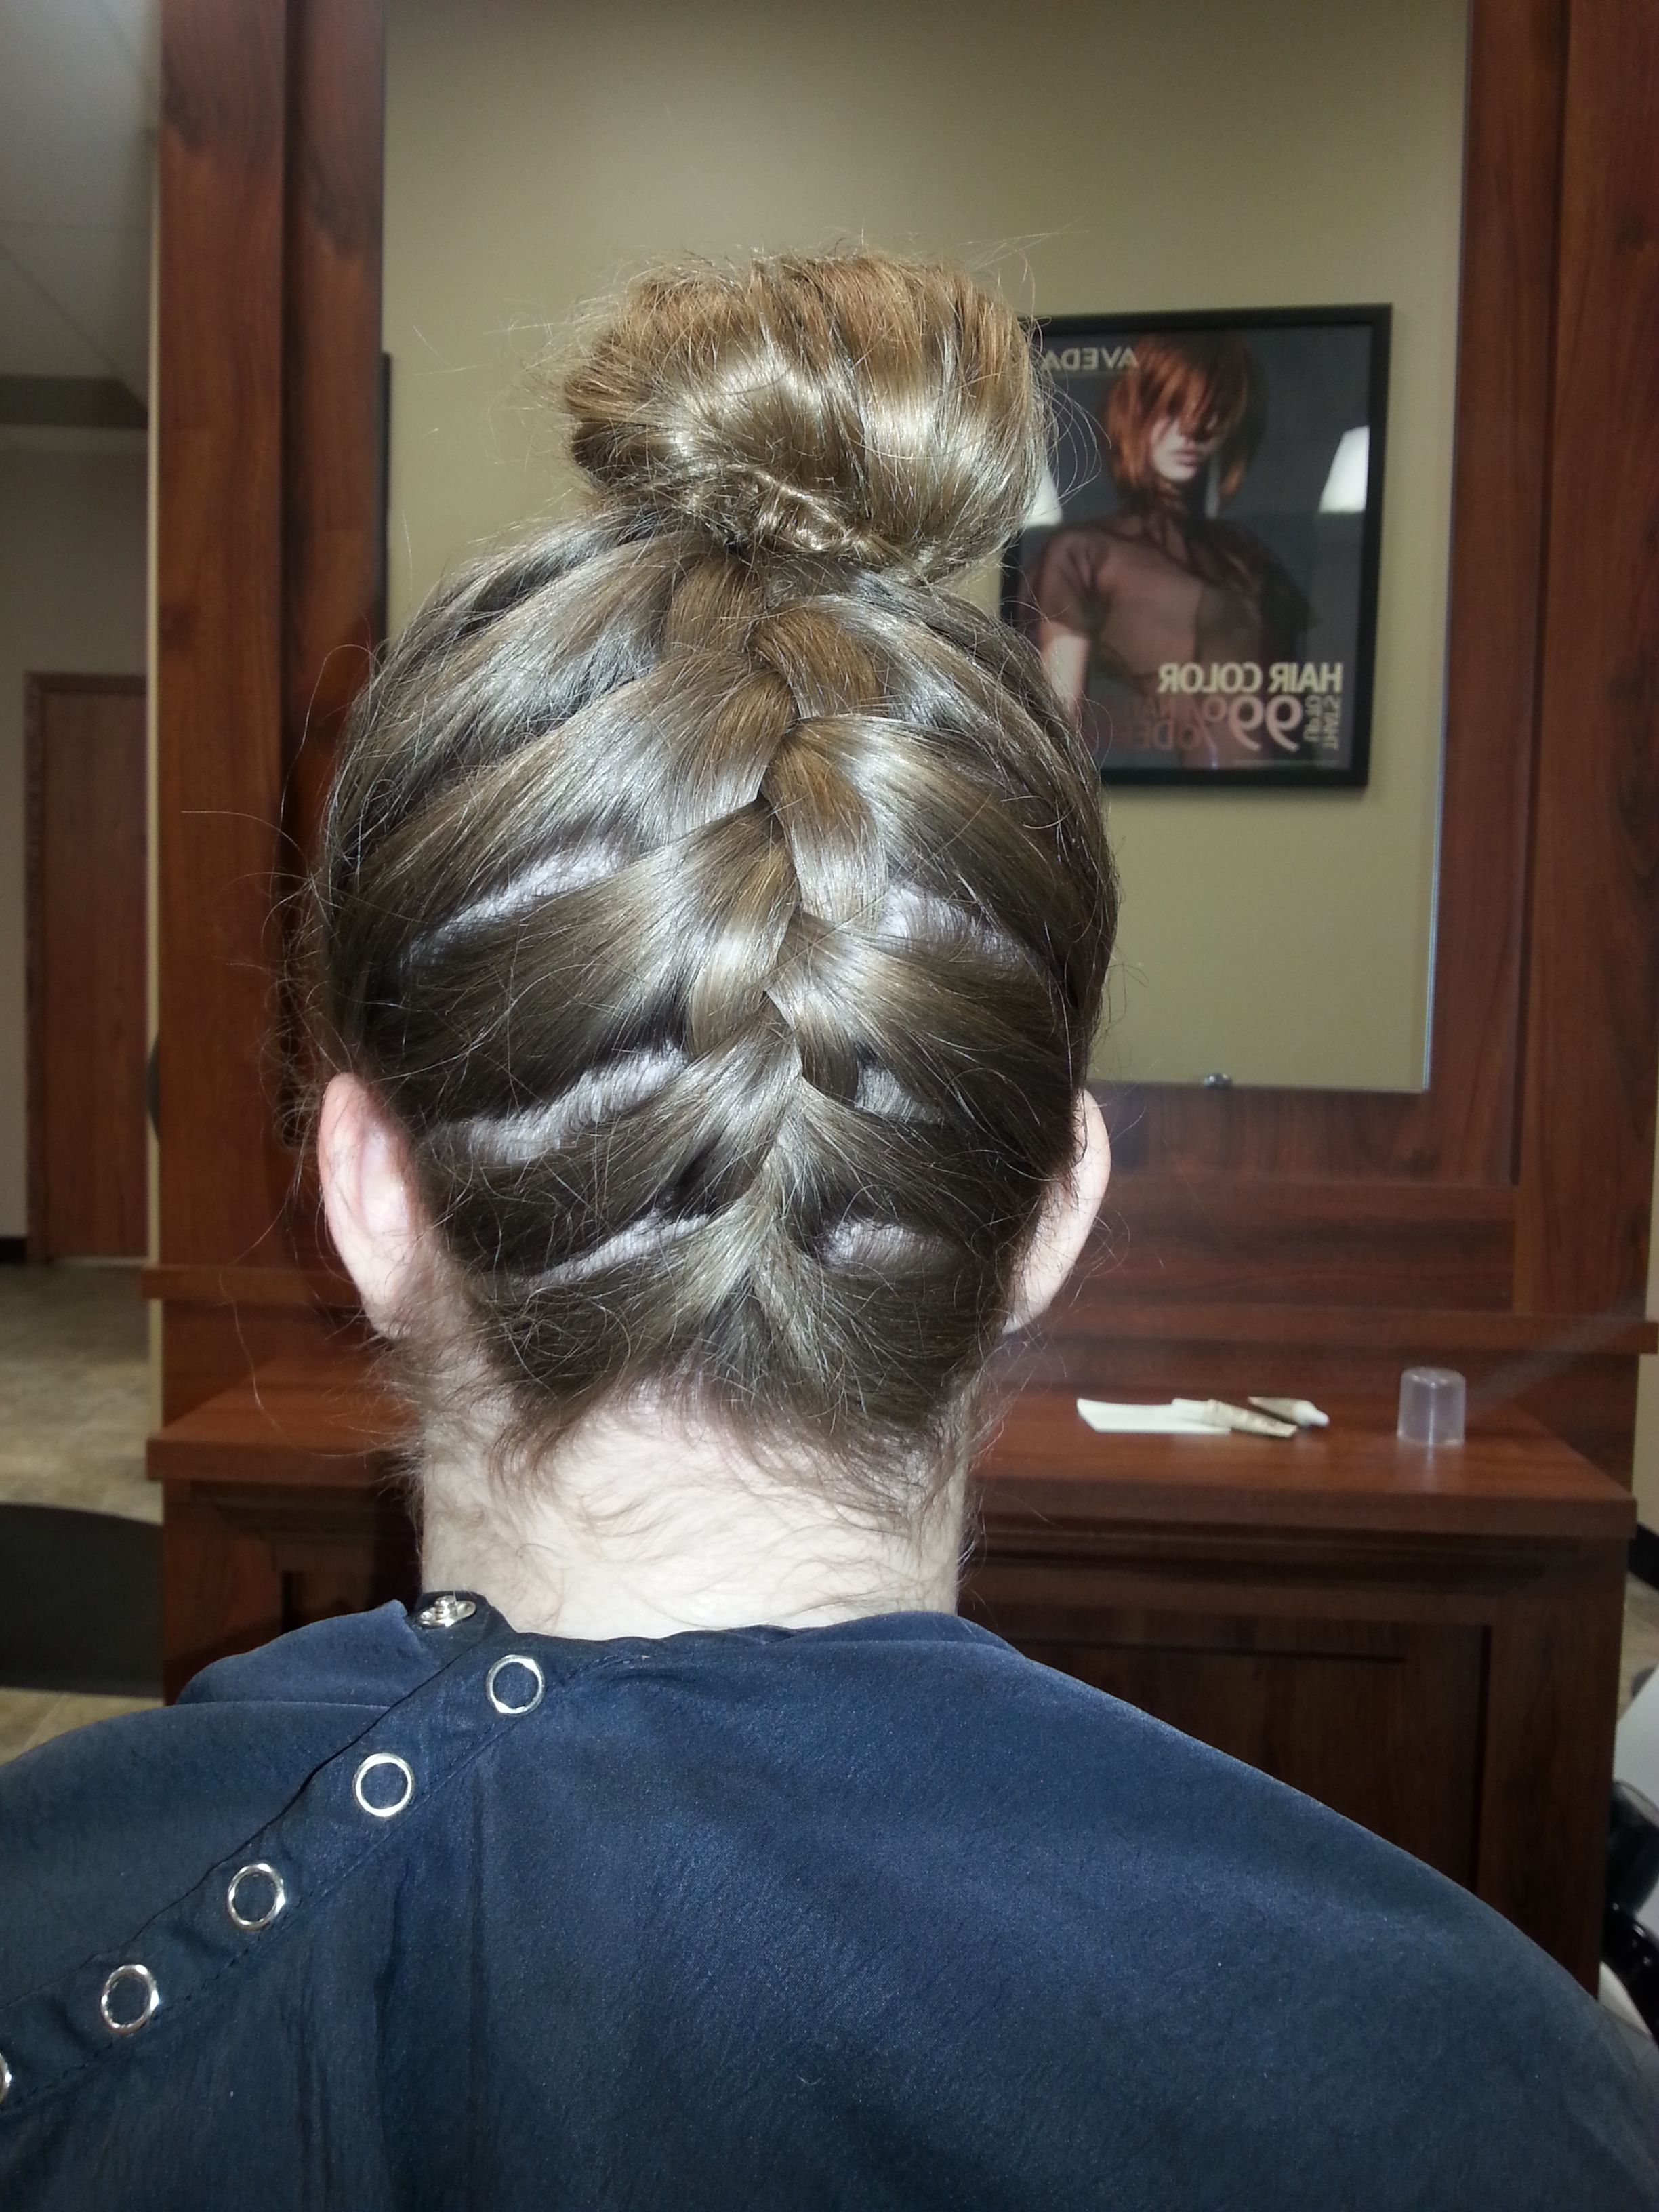 French braid into a tight top bun. View 1/3.